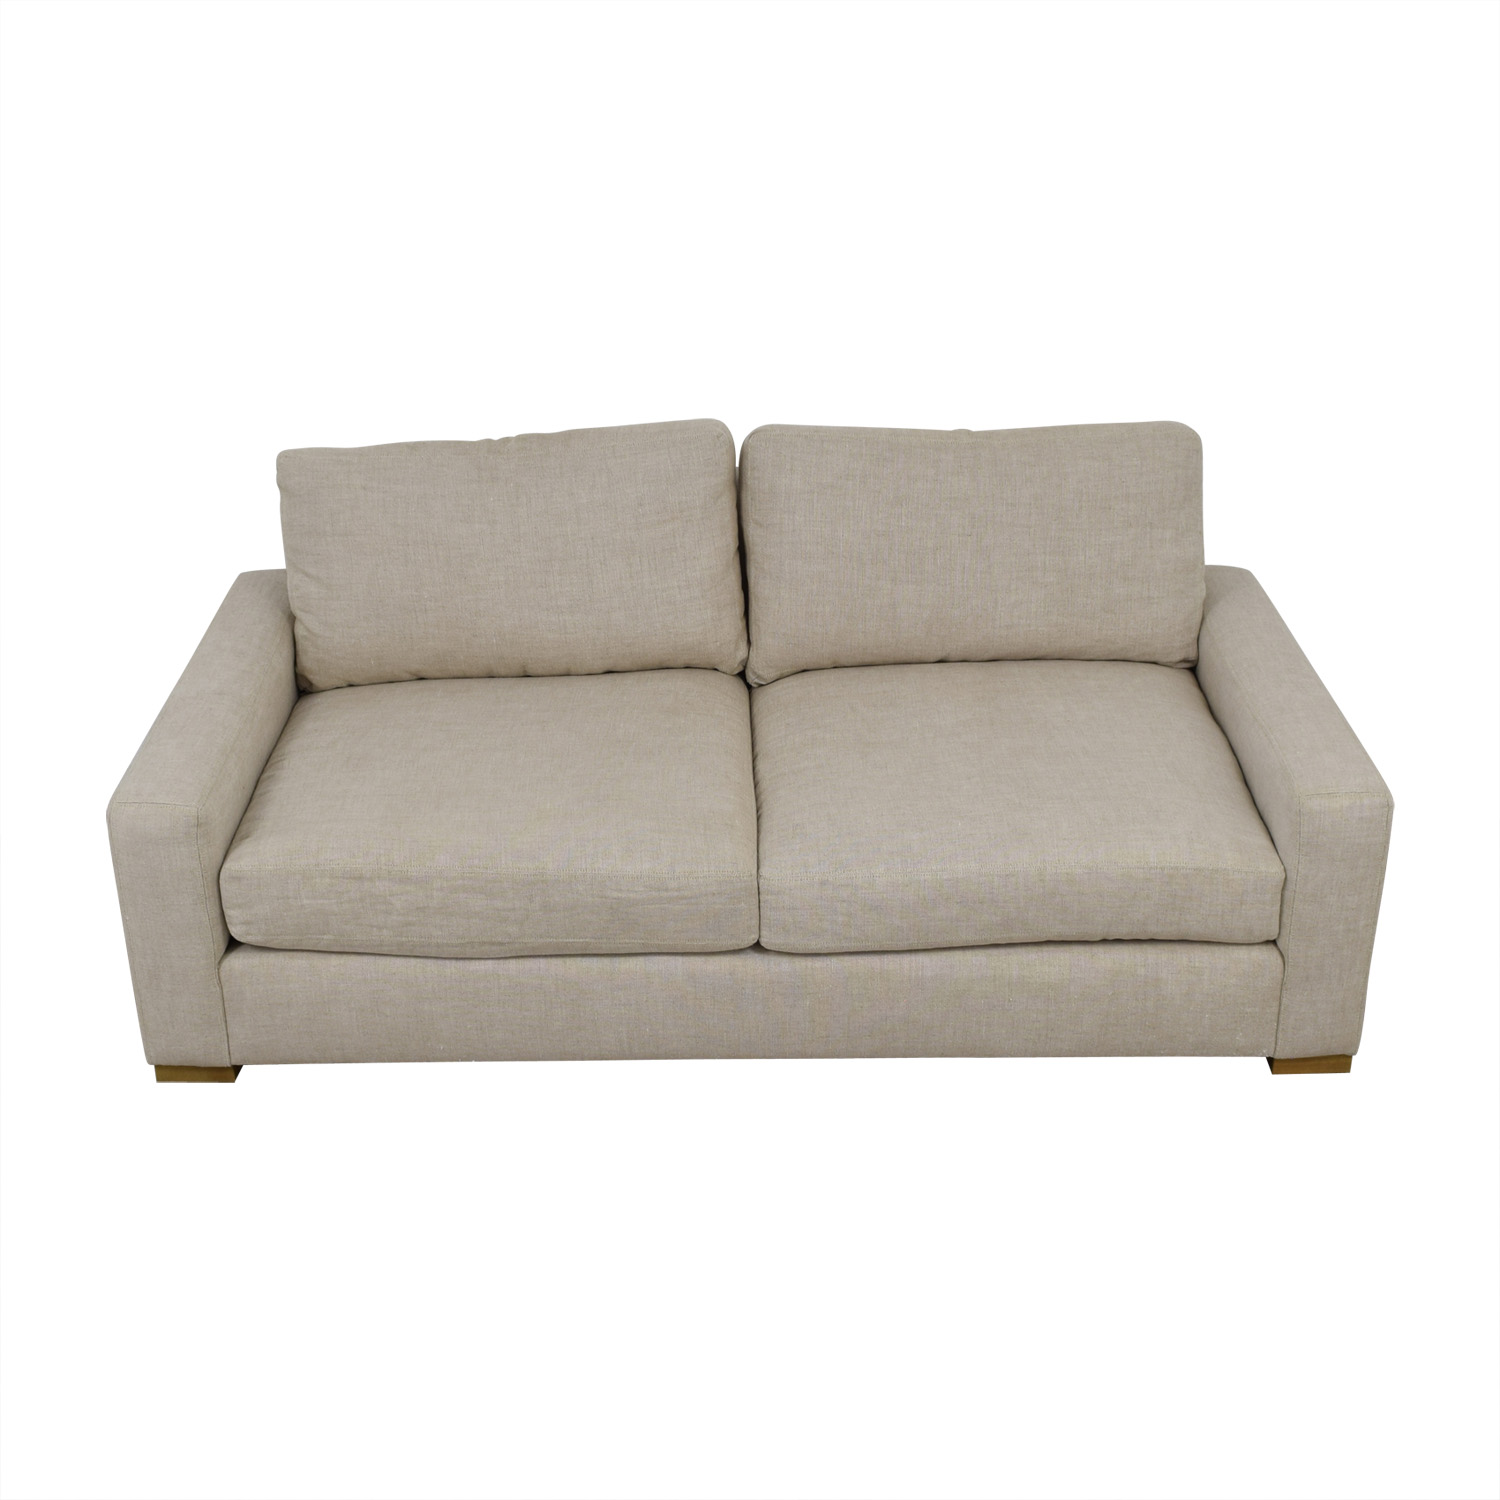 shop Restoration Hardware Maxwell Beige Two-Cushion Sofa Restoration Hardware Sofas